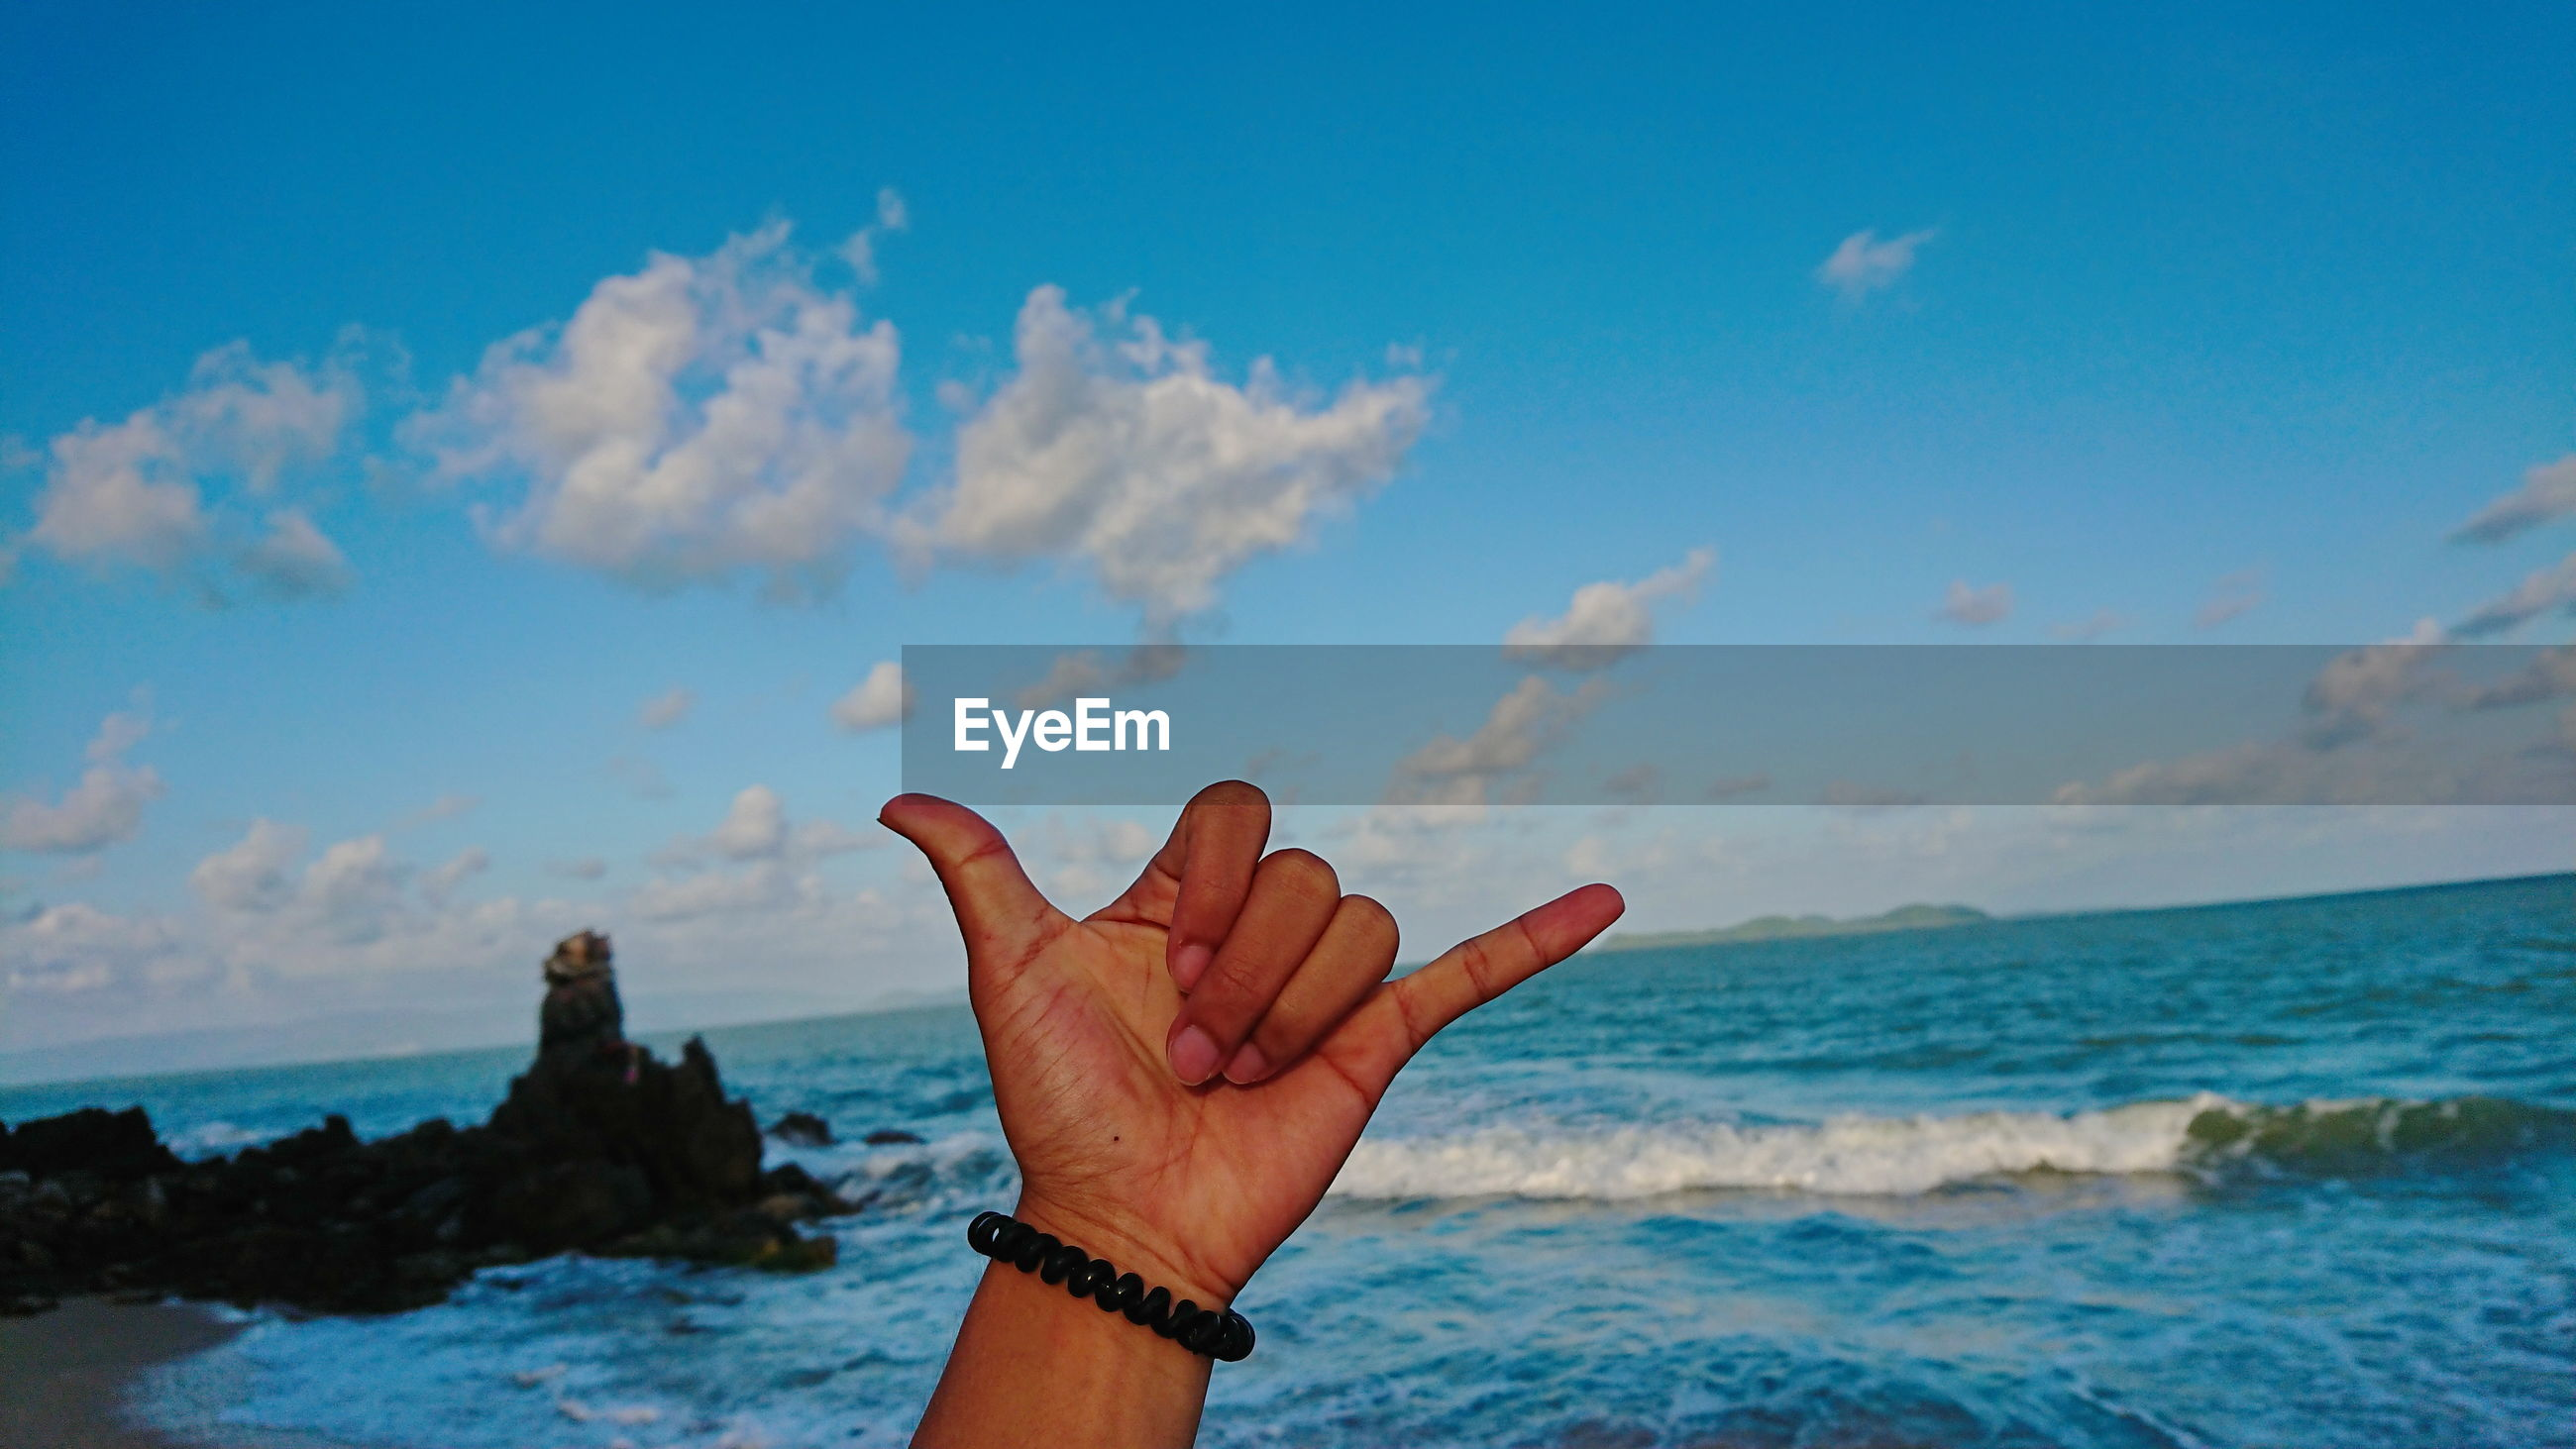 Cropped image of person gesturing by sea against sky